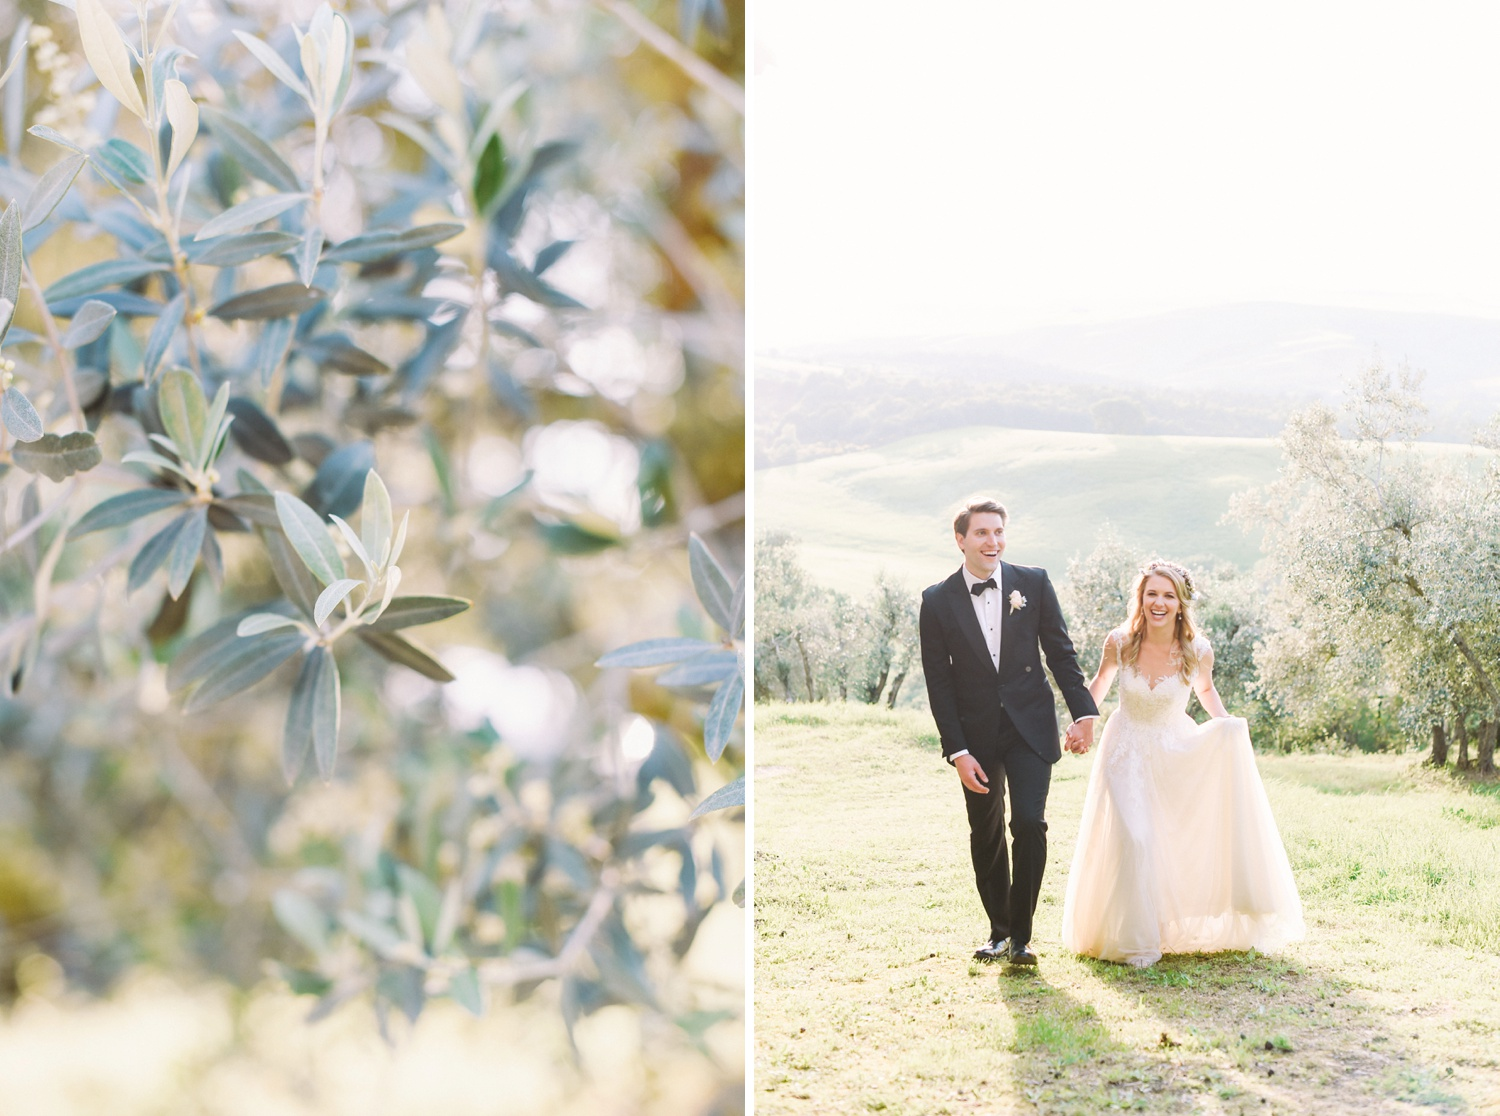 landvphotography_wedding_photographer_tuscany_0072.jpg